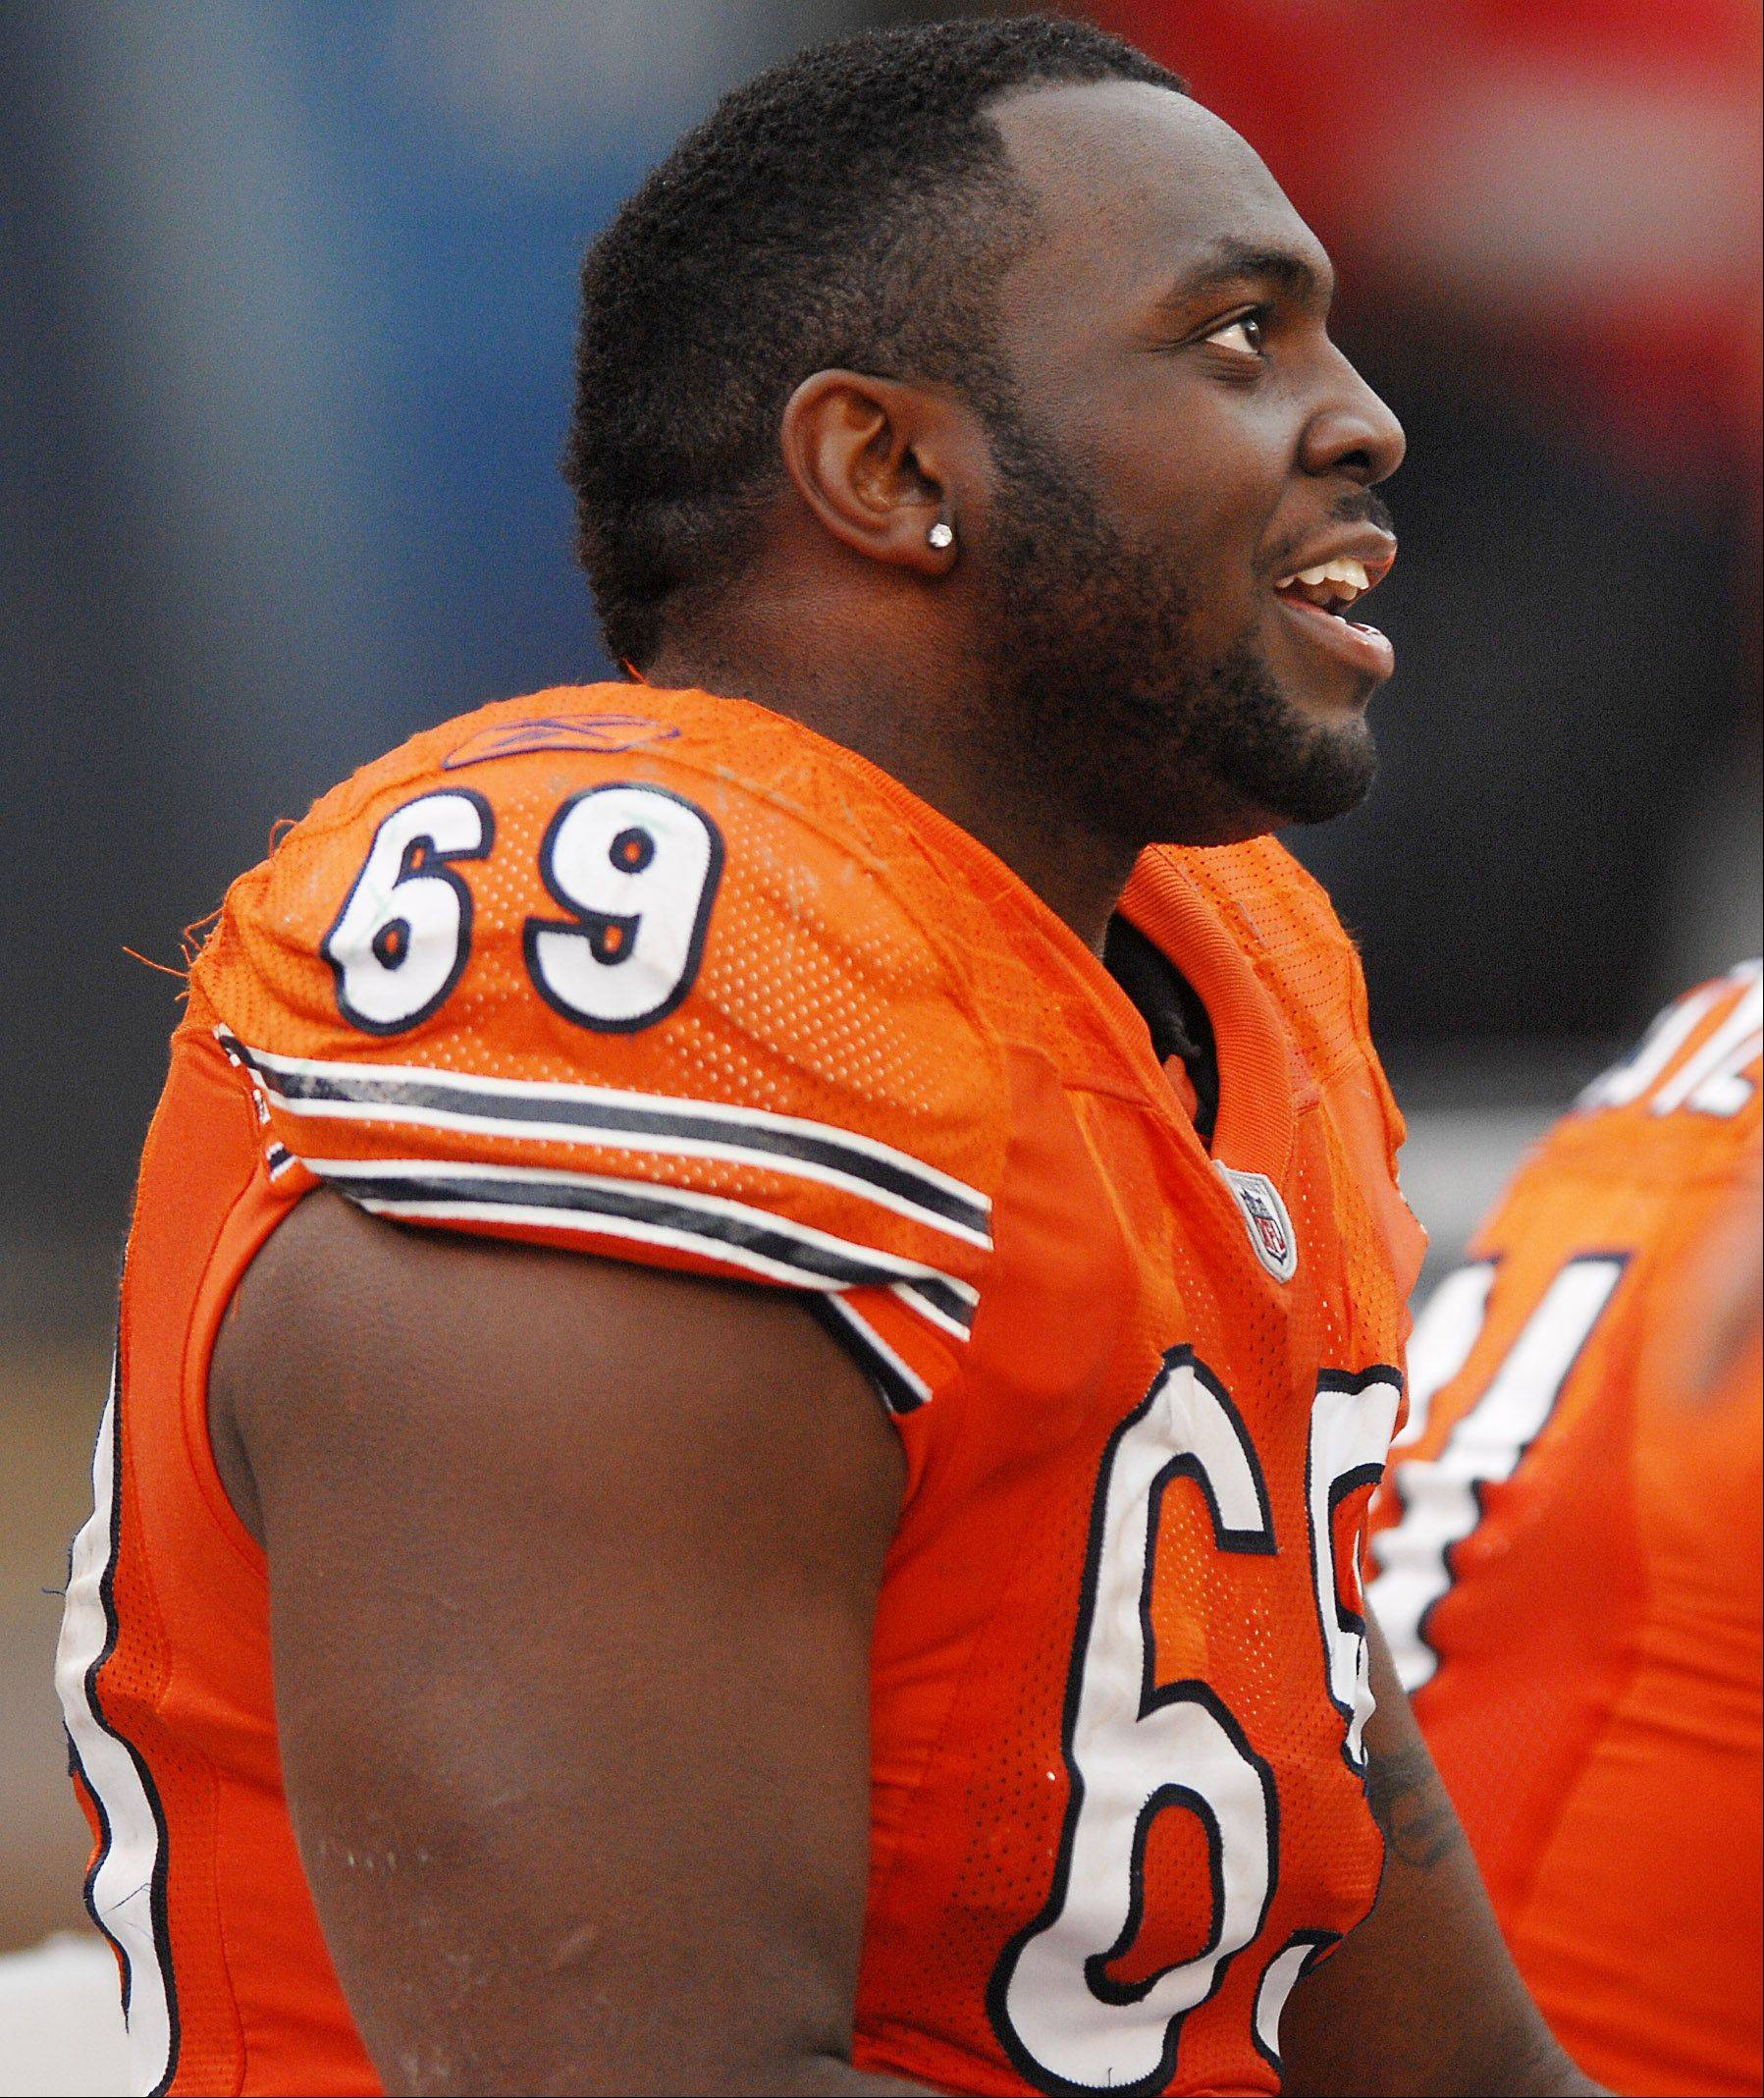 Bears defensive tackle Henry Melton made the Pro Bowl Wednesday for the first time.